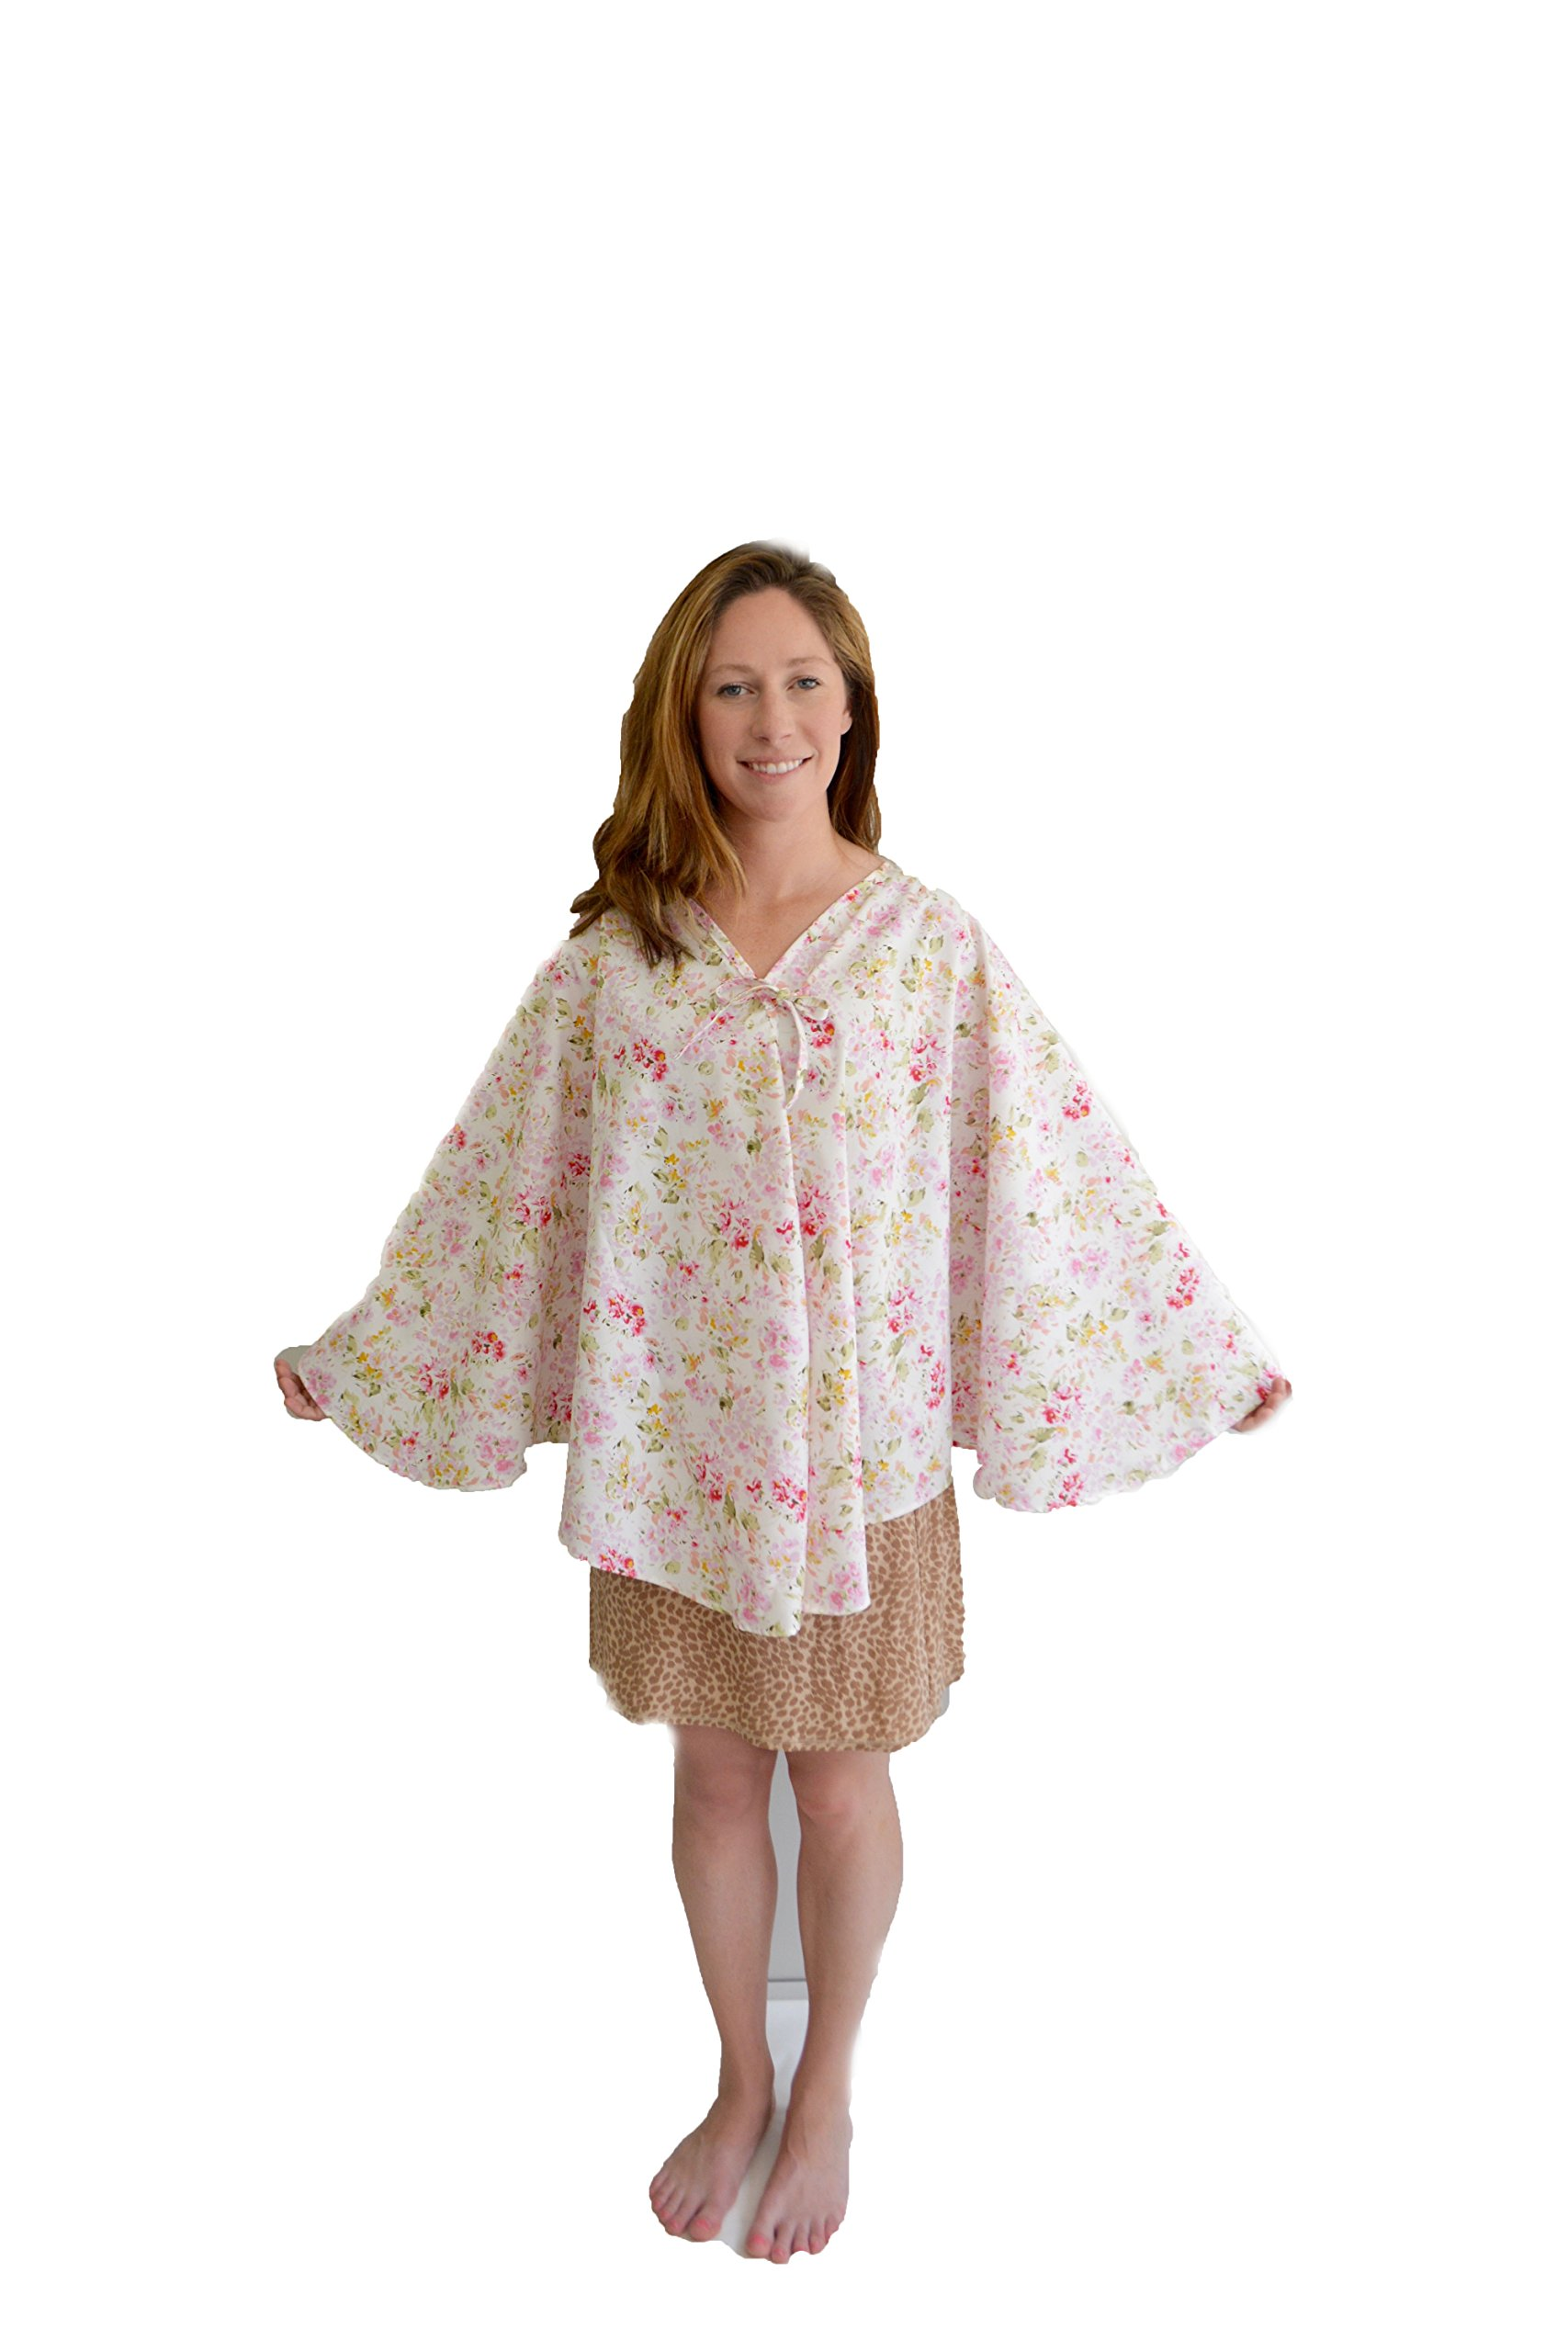 Health Gear - Mammography Exam Imaging Cape - Monet Floral, One Size (6 piece pack)